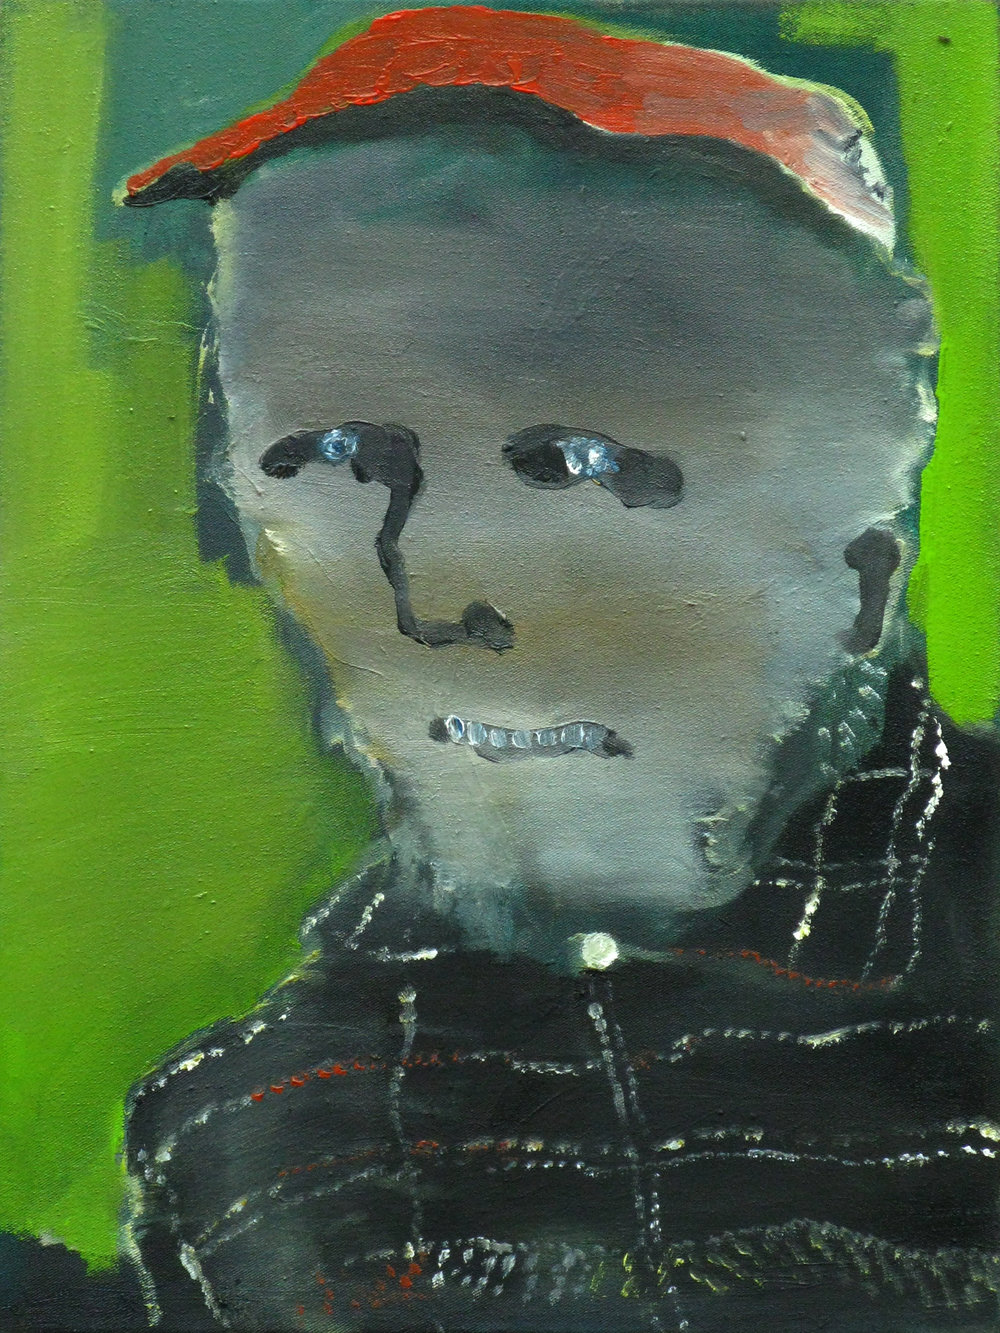 Grinser, 2008, oil on canvas, 44x33cm.jpg